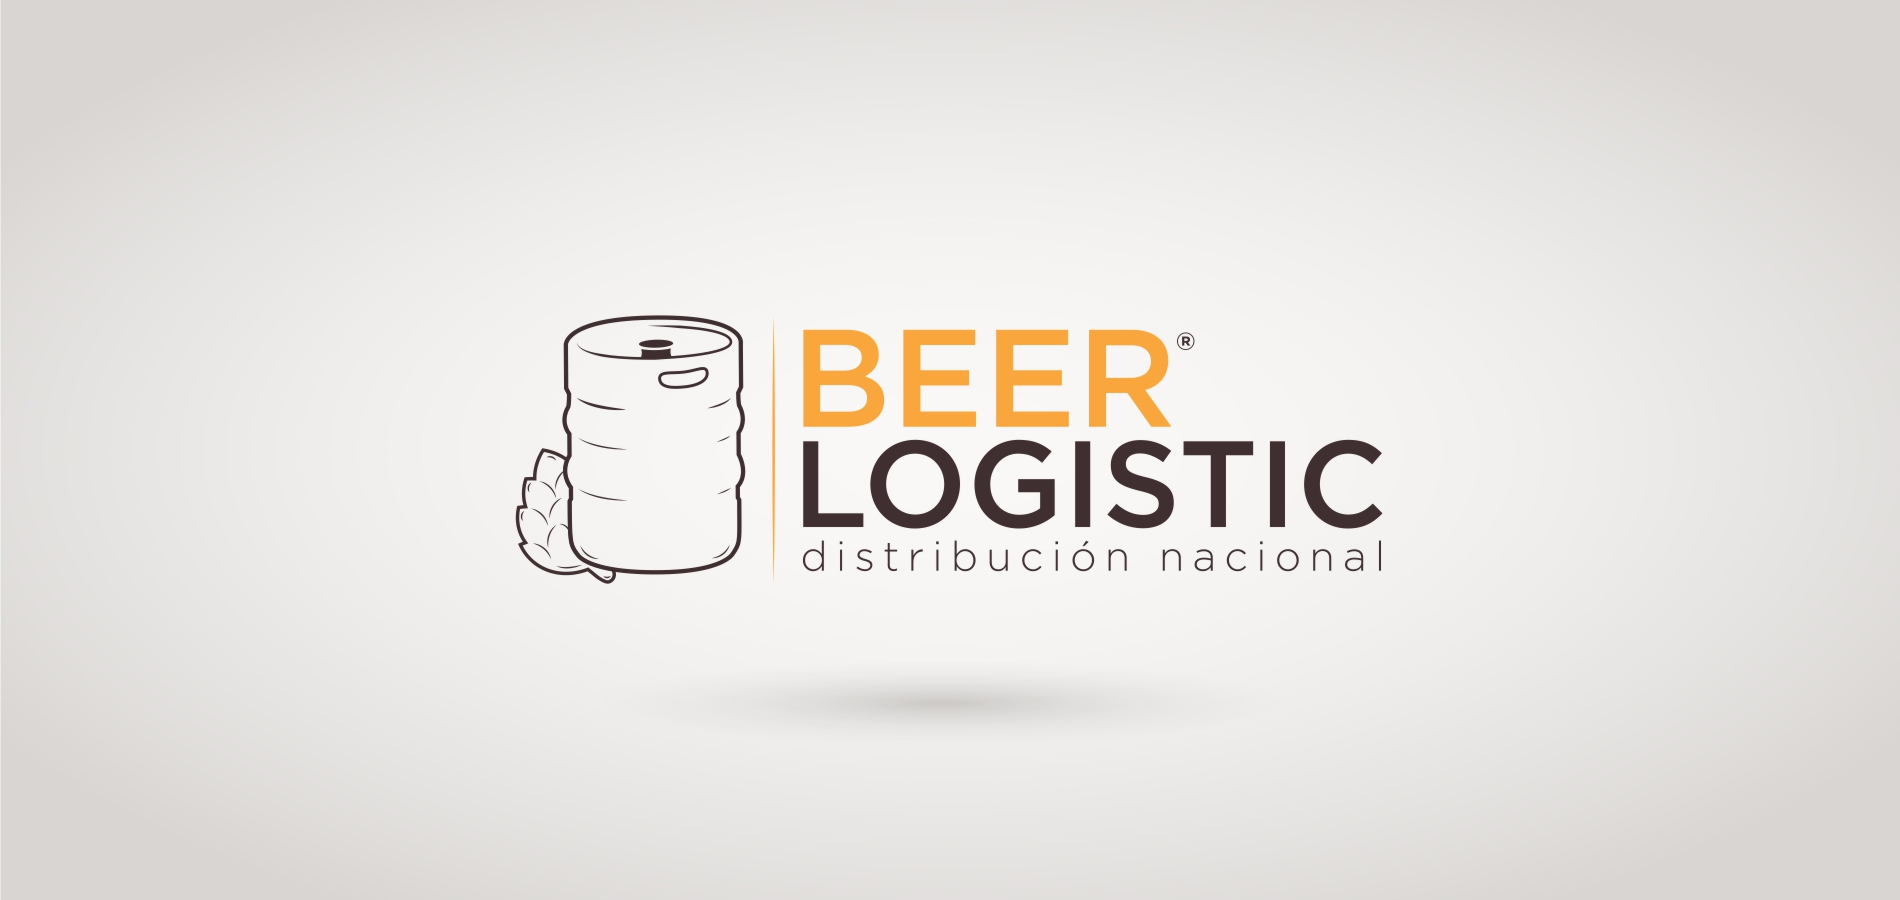 Beer Logistic